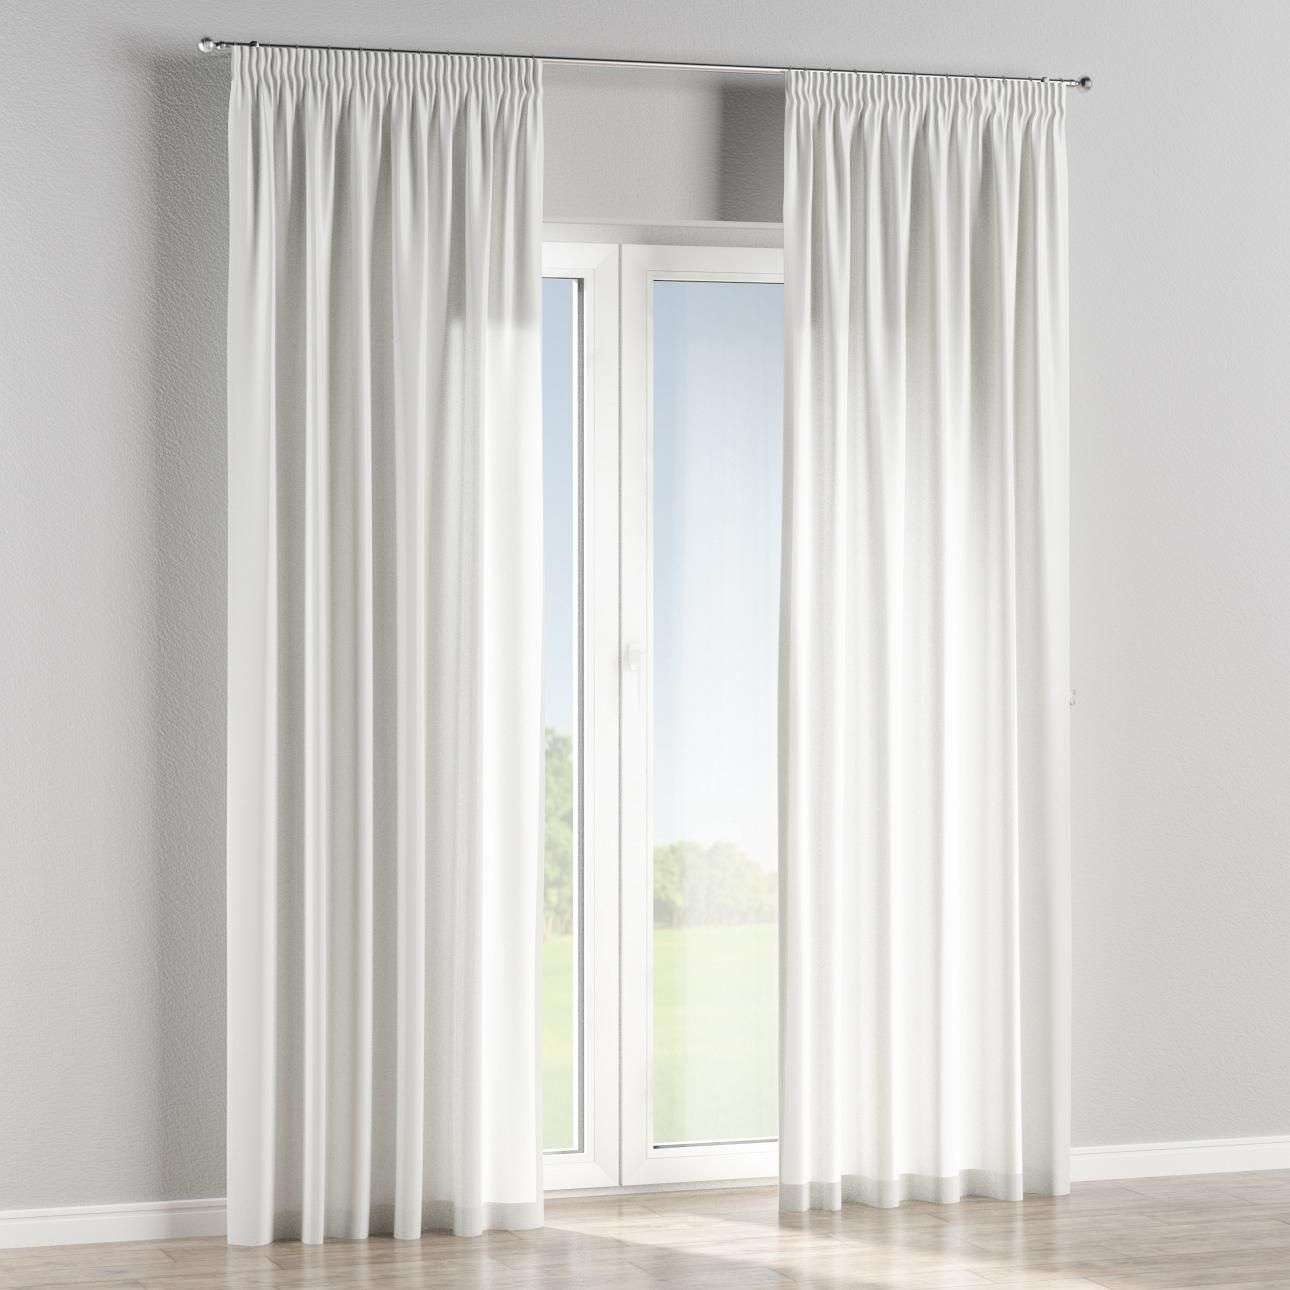 Pencil pleat curtains in collection Flowers, fabric: 311-09